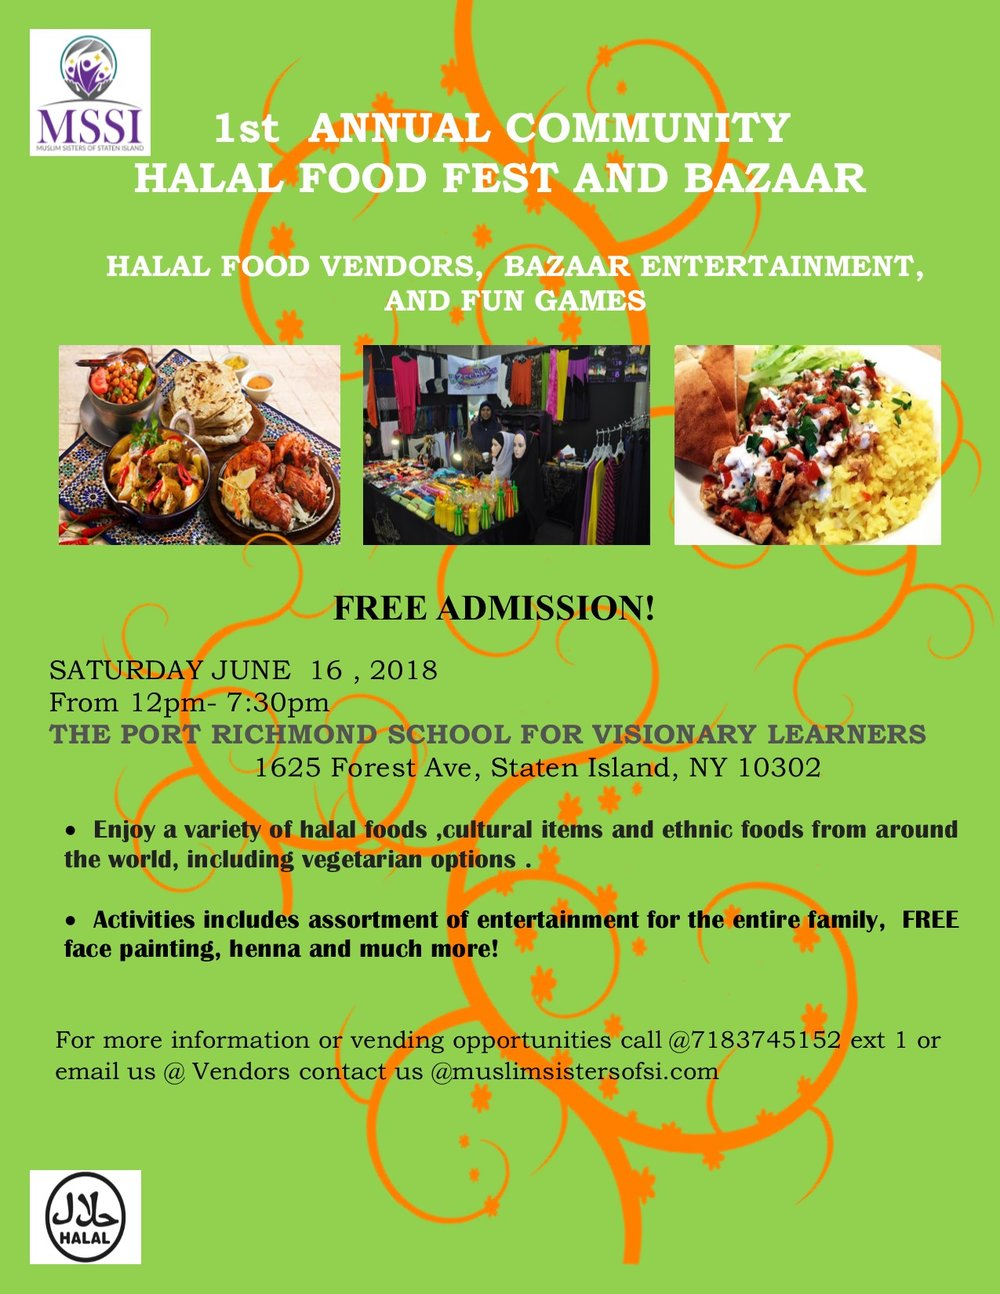 MSSI Annual Community Food Fest & Bazaar.jpg